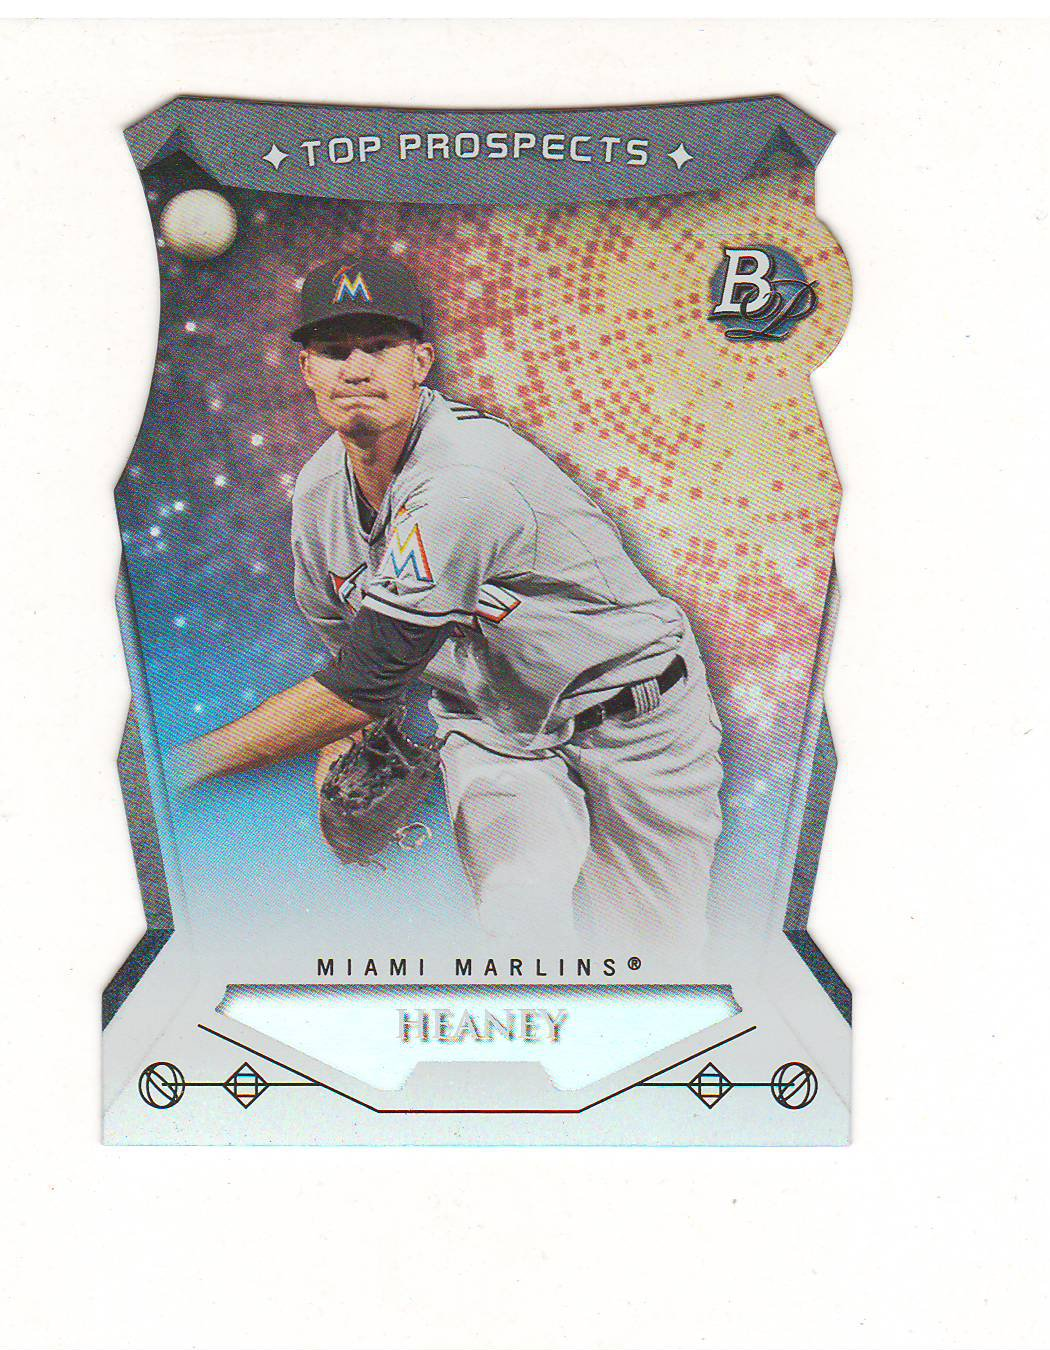 2014 Bowman Platinum Top Prospects Andrew Heaney #TP-AHE Miami Marlins